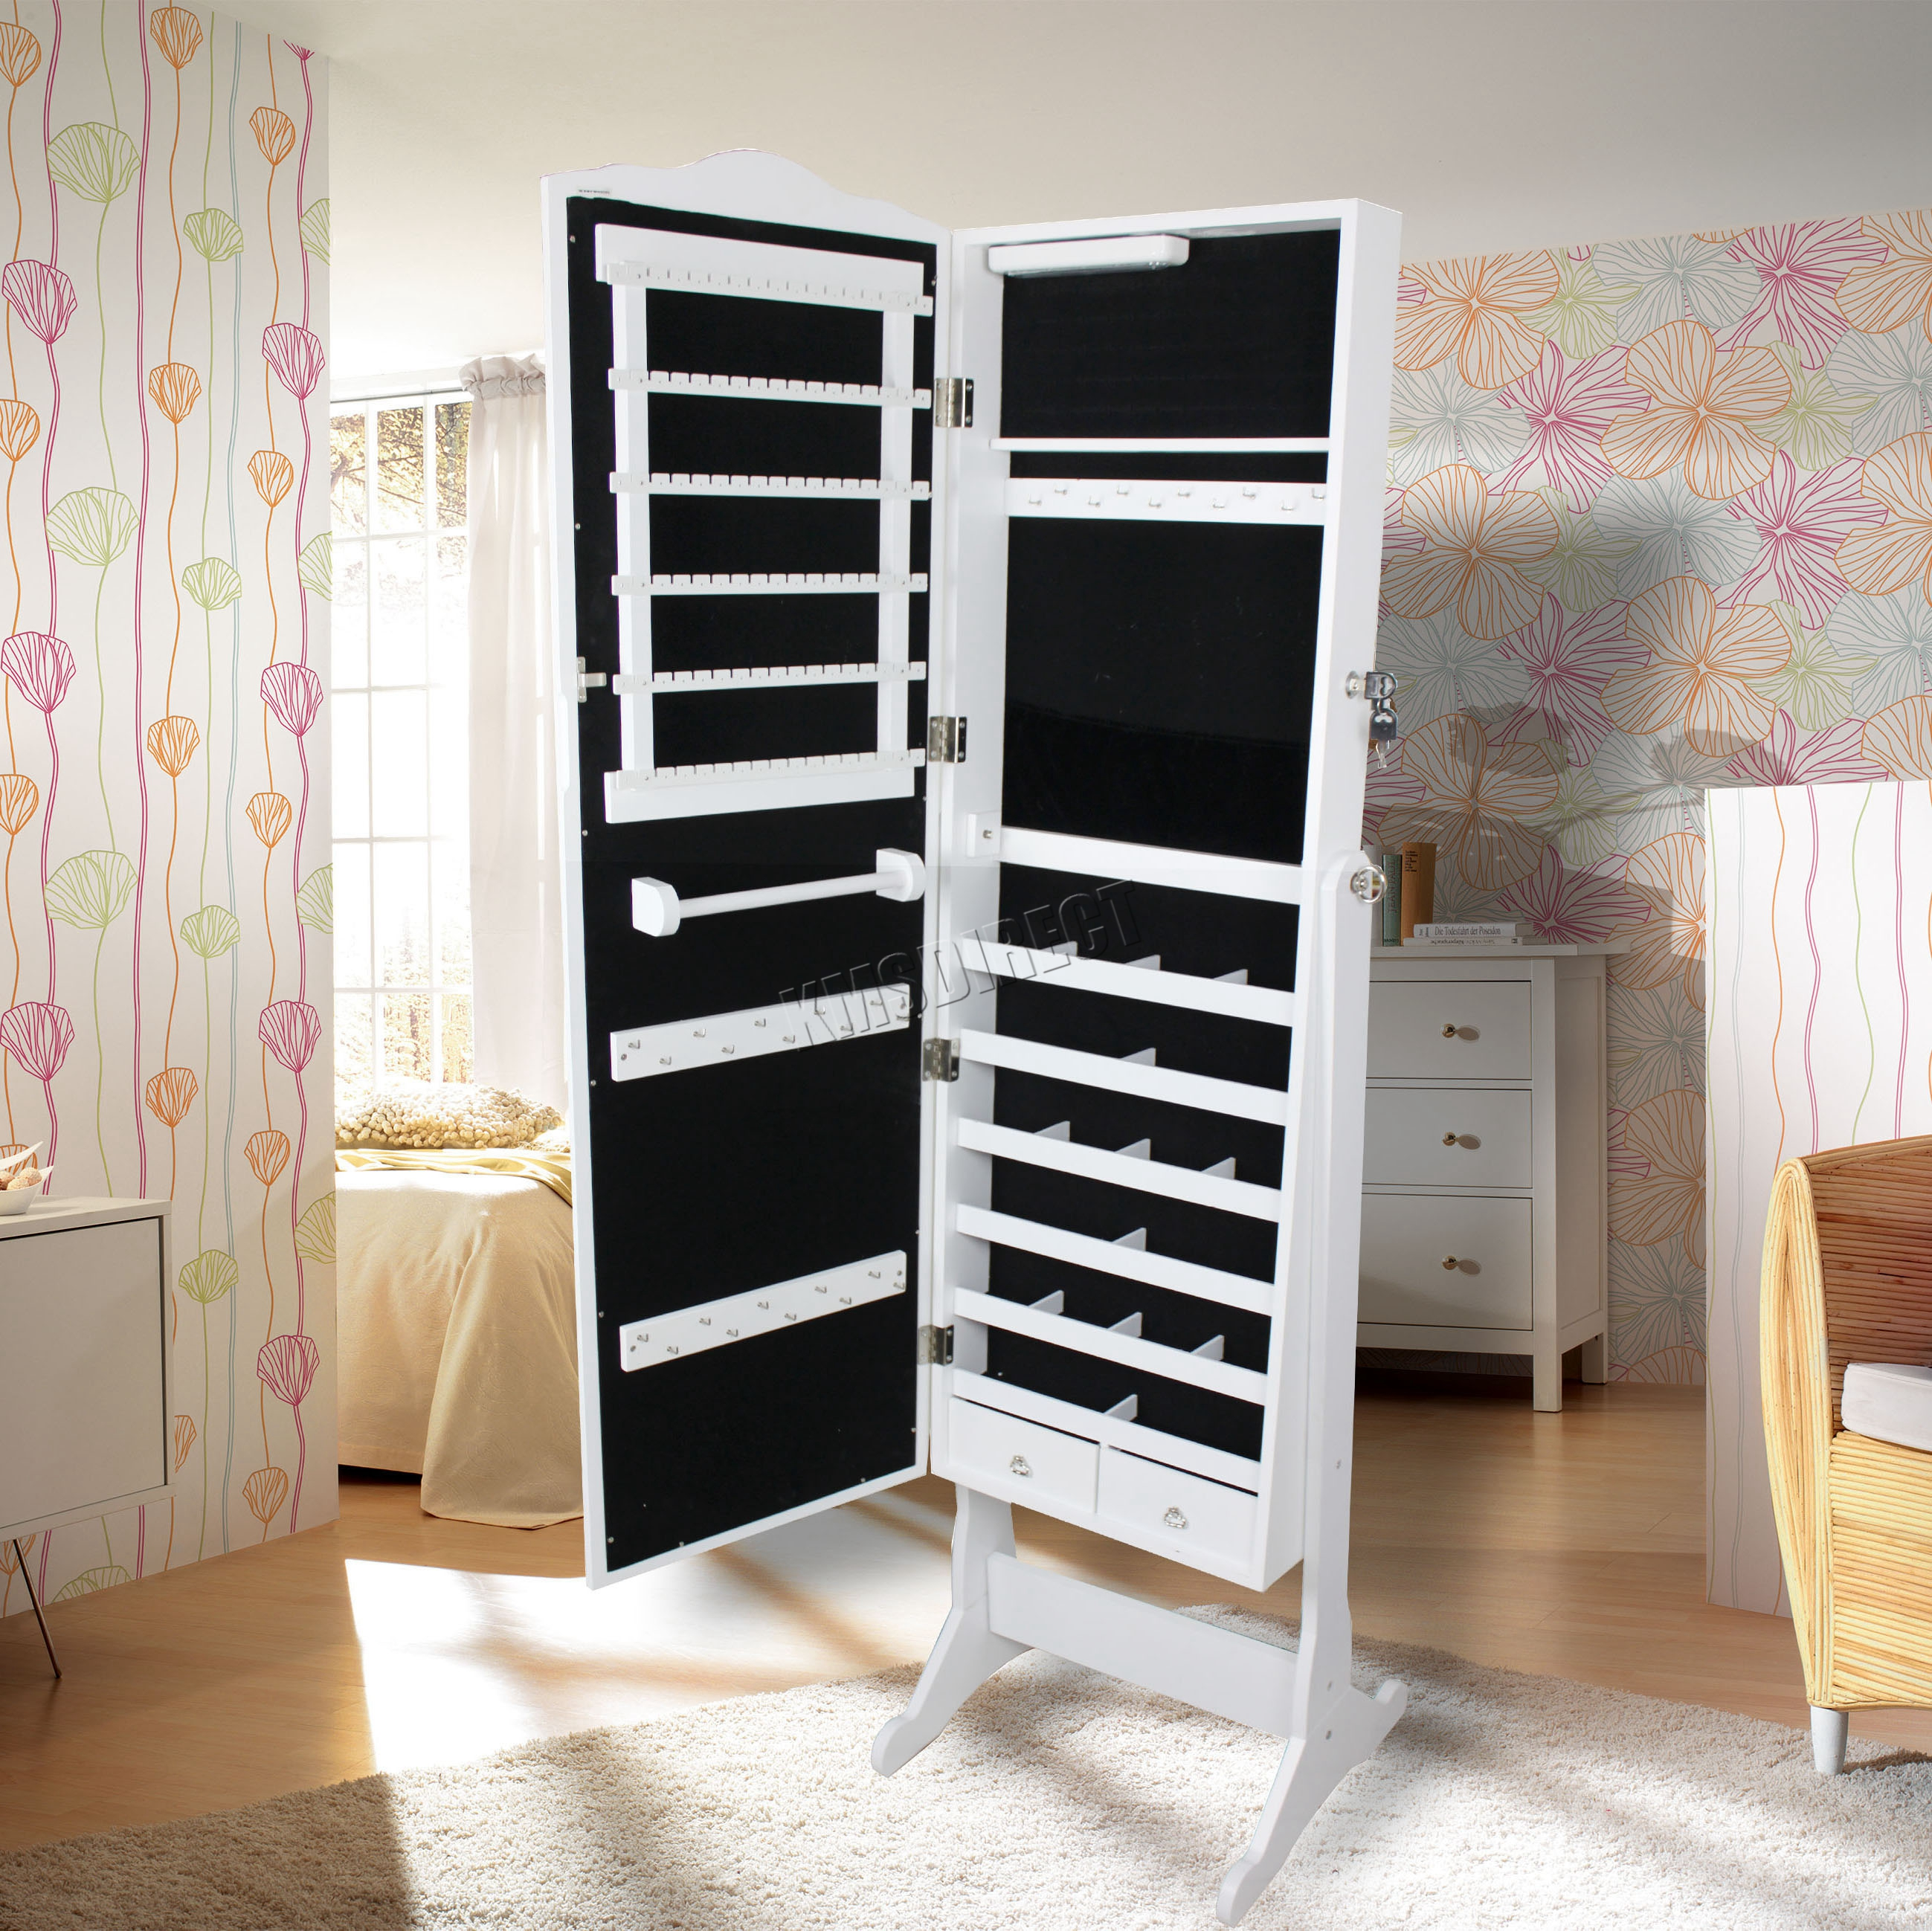 WestWood-Armoire-Jewellery-Cabinet-Makeup-Storage-Lockable-Jewelry- & WestWood Armoire Jewellery Cabinet Makeup Storage Lockable Jewelry ...